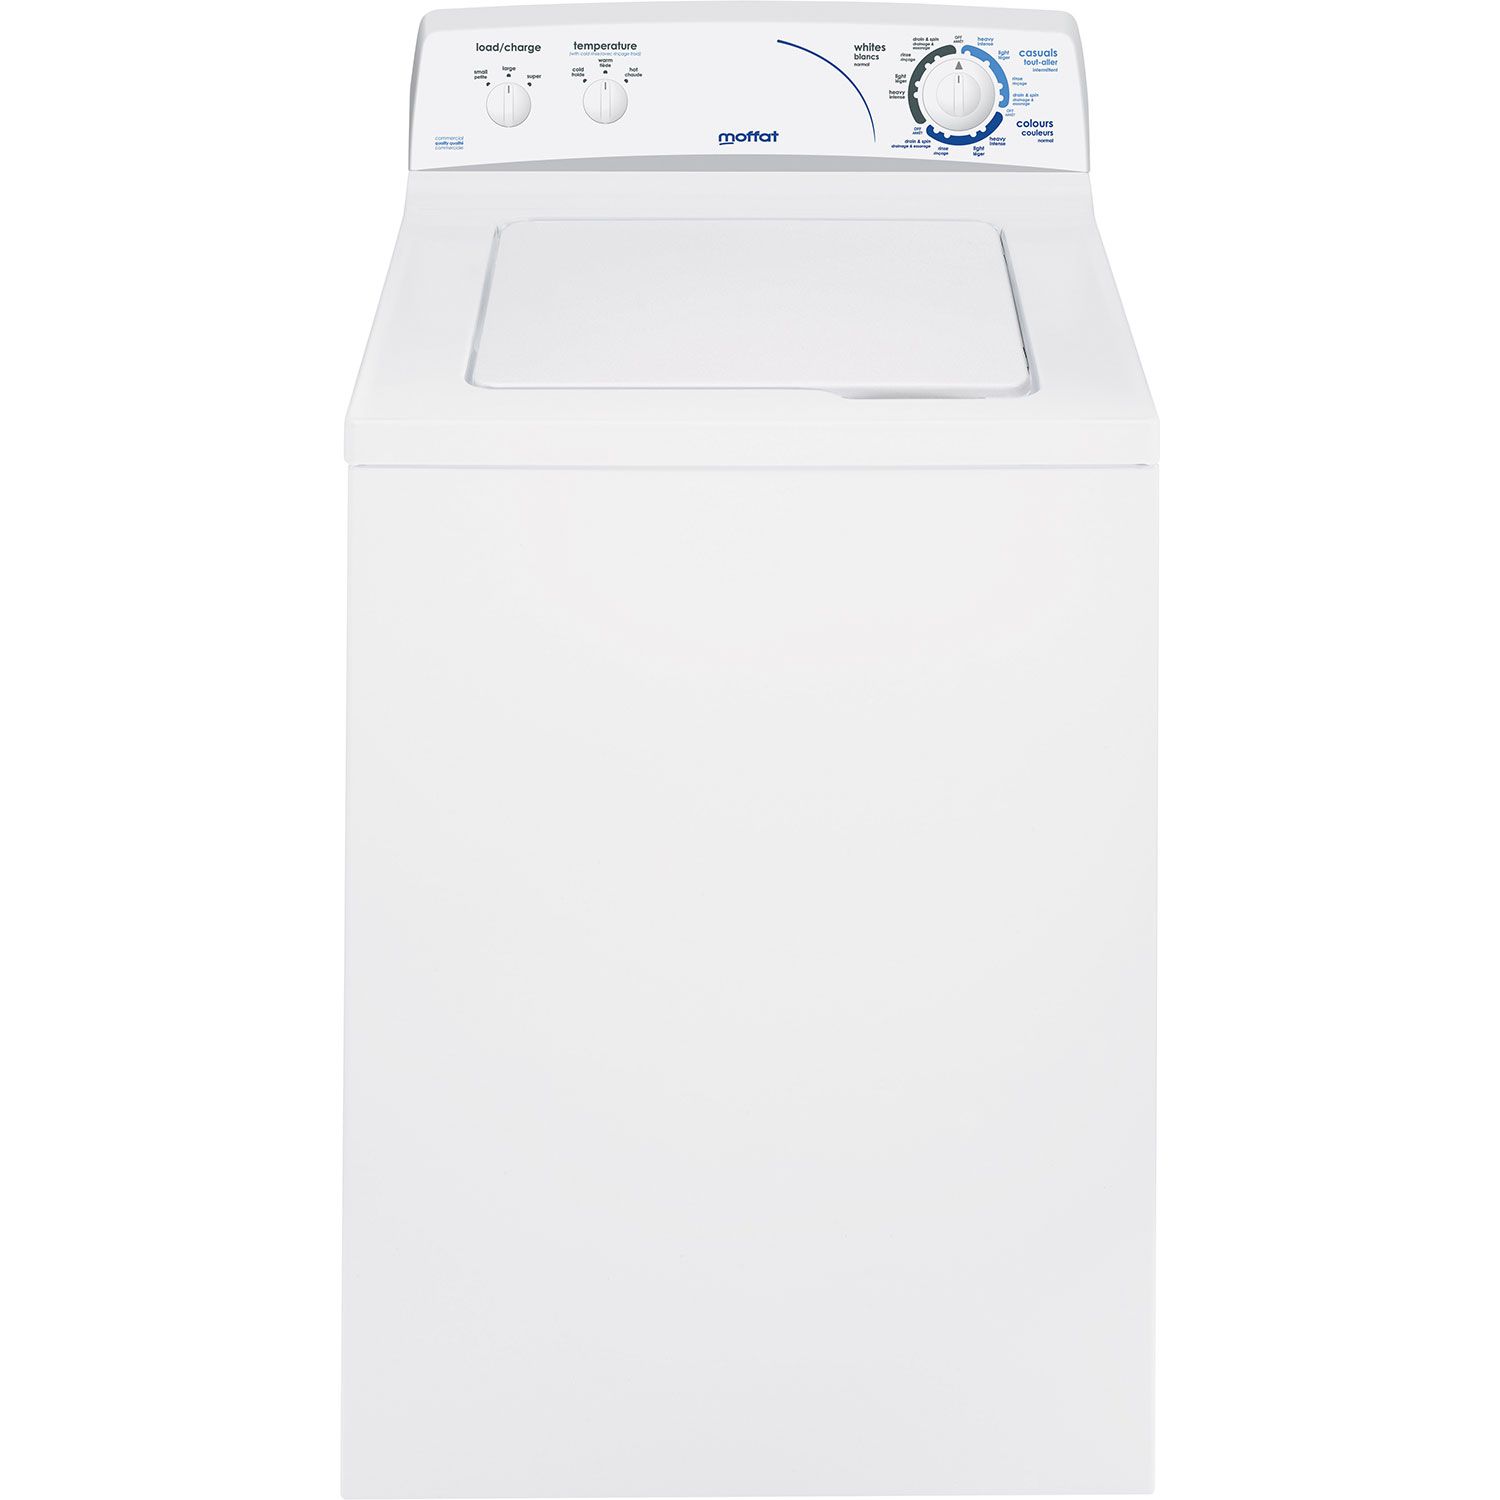 ft top load washer mtap1100fww white washers best buy canada